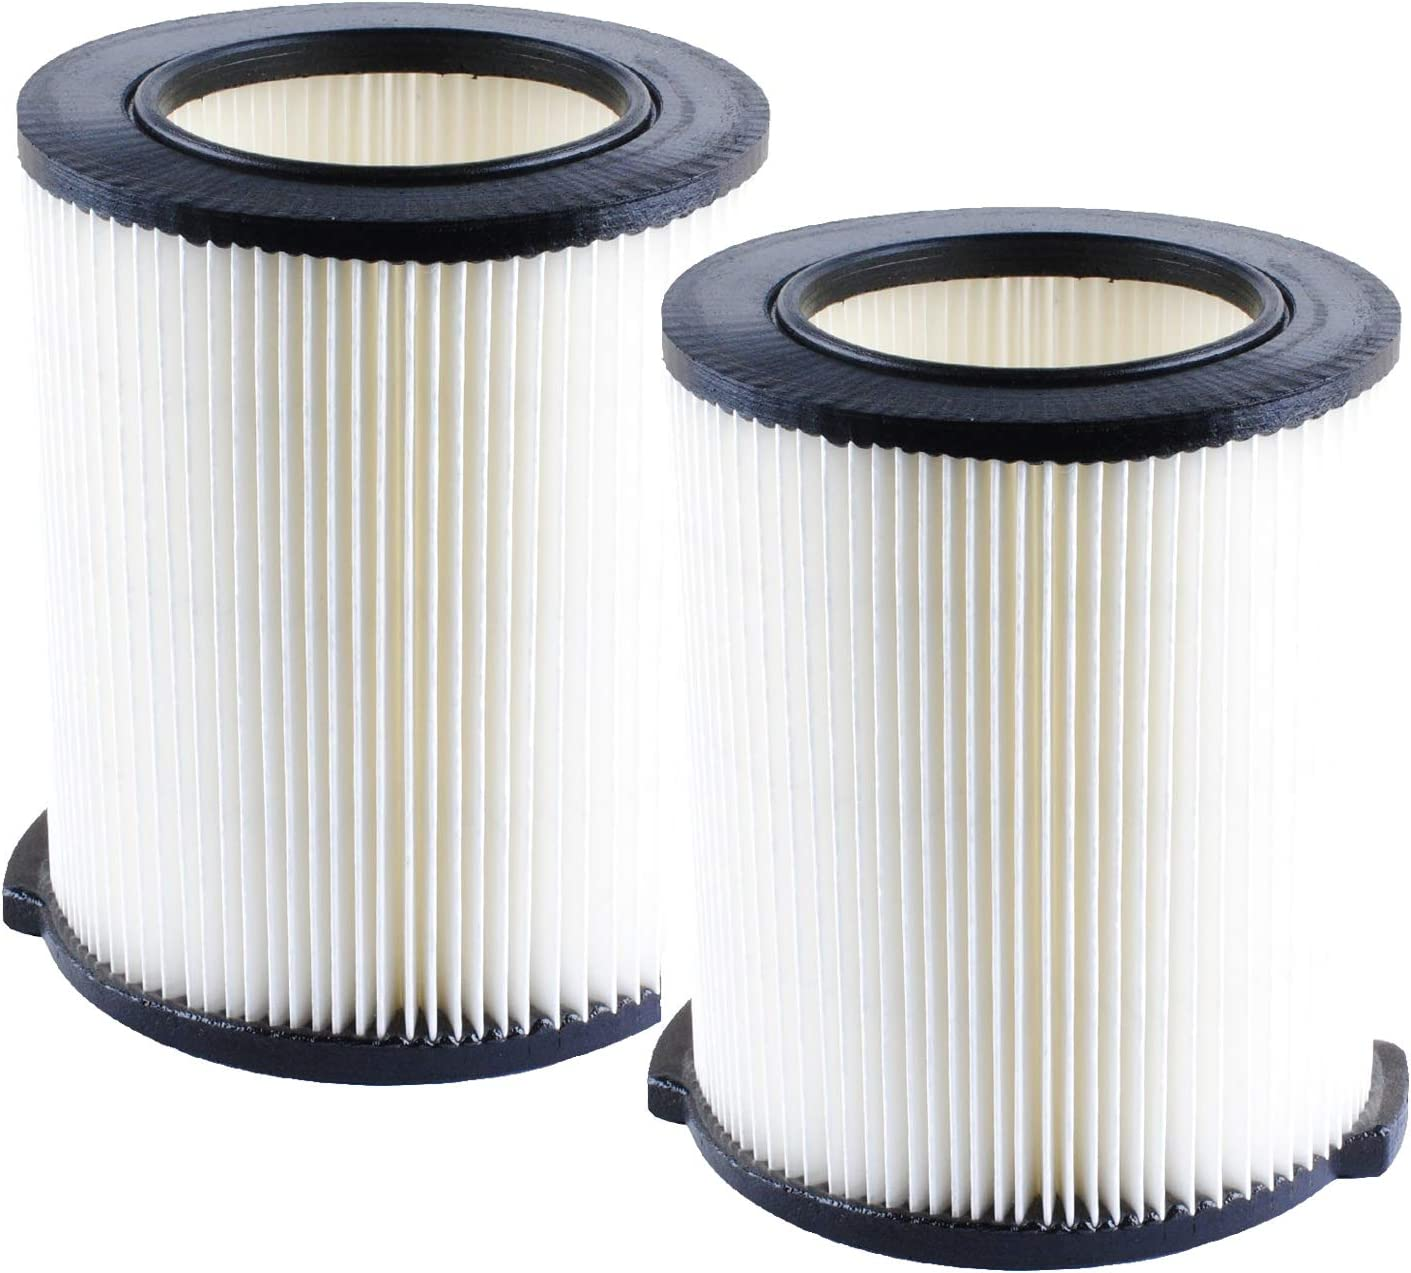 VF4000 Wet Dry Vac Replacement Filter Compatible with Ridgid 5 to 20-Gallon 6-9 Gal Replace for Husky Craftsman 17816 Vacuum Replace WD5500, WD0671, WD6425, WD0970 Washable & Reusable VF4200 Filters(2 Pack)